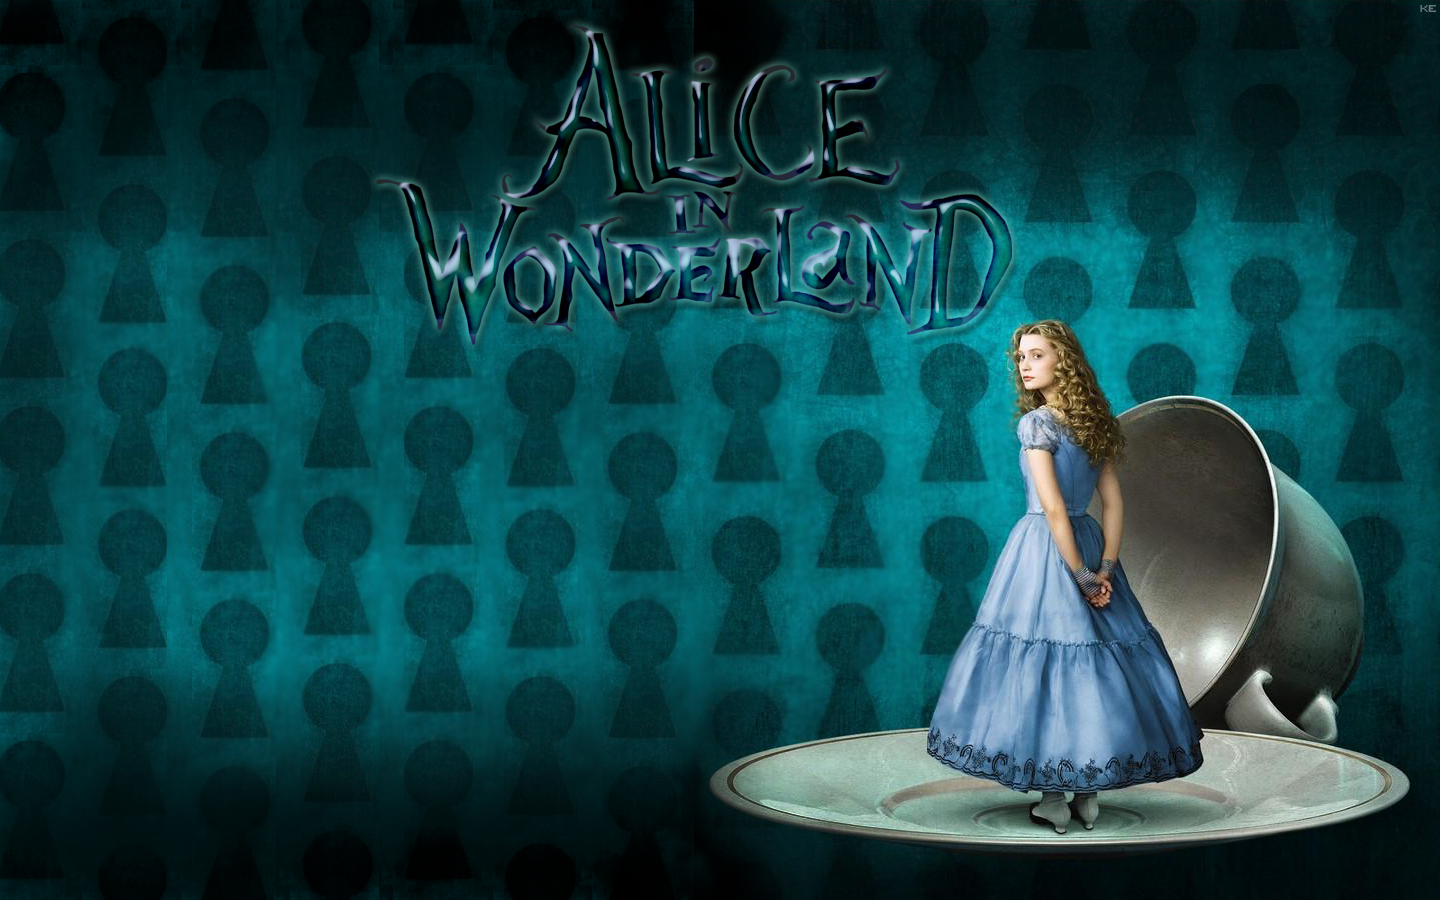 alice in wonderland wallpaper1 by cute cuddly cupcake on